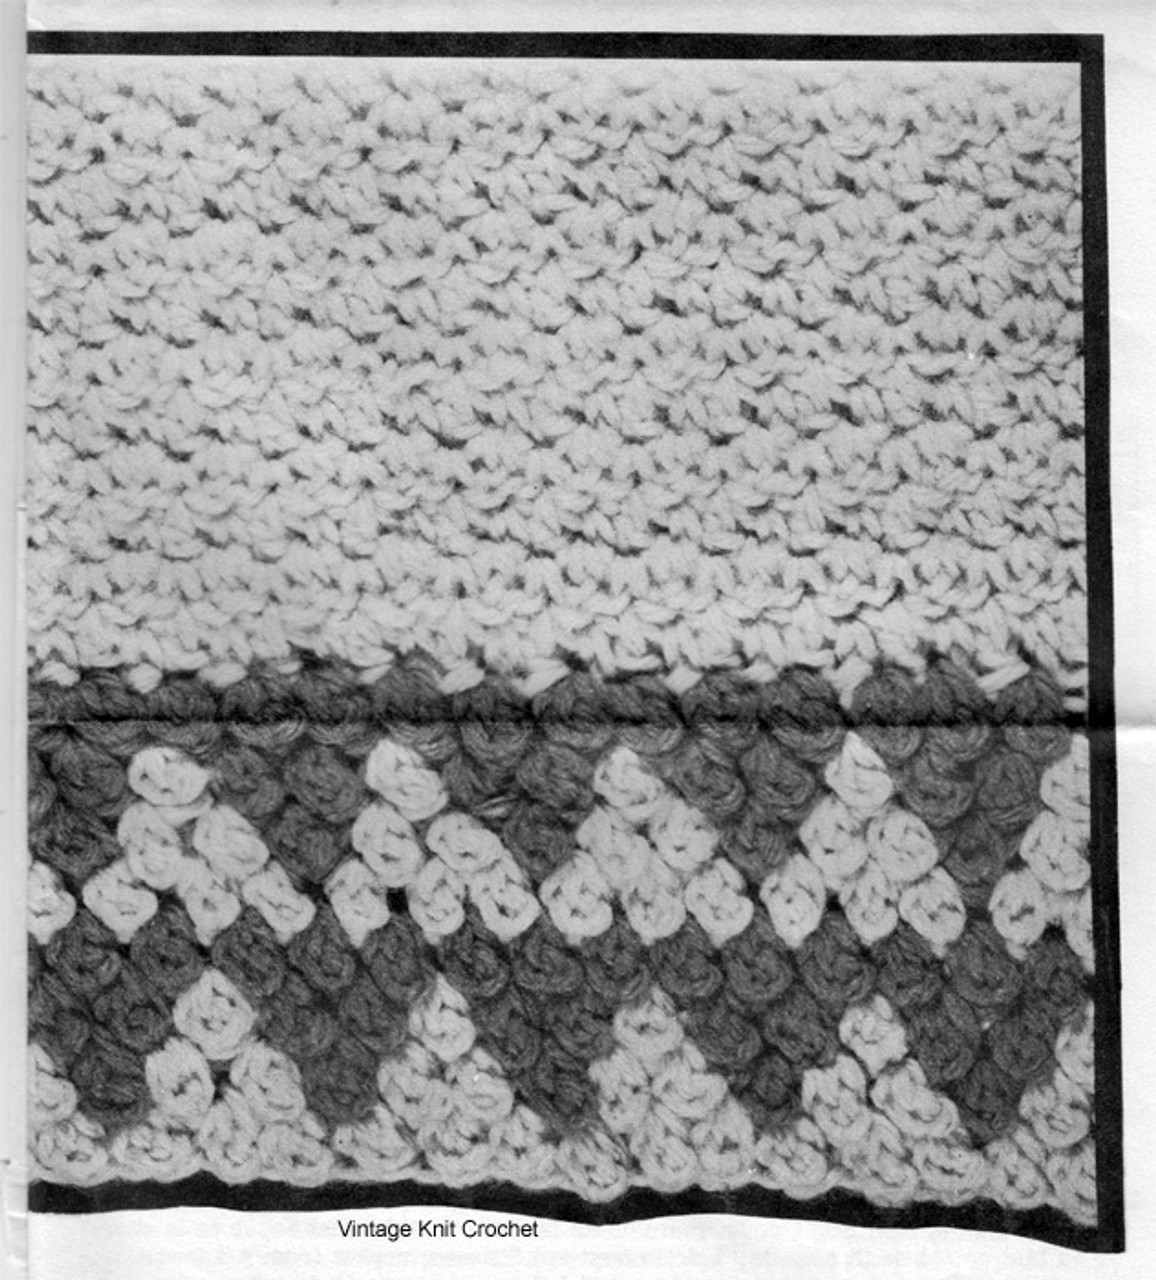 Crocheted Cape Pattern Stitch for Design 7231